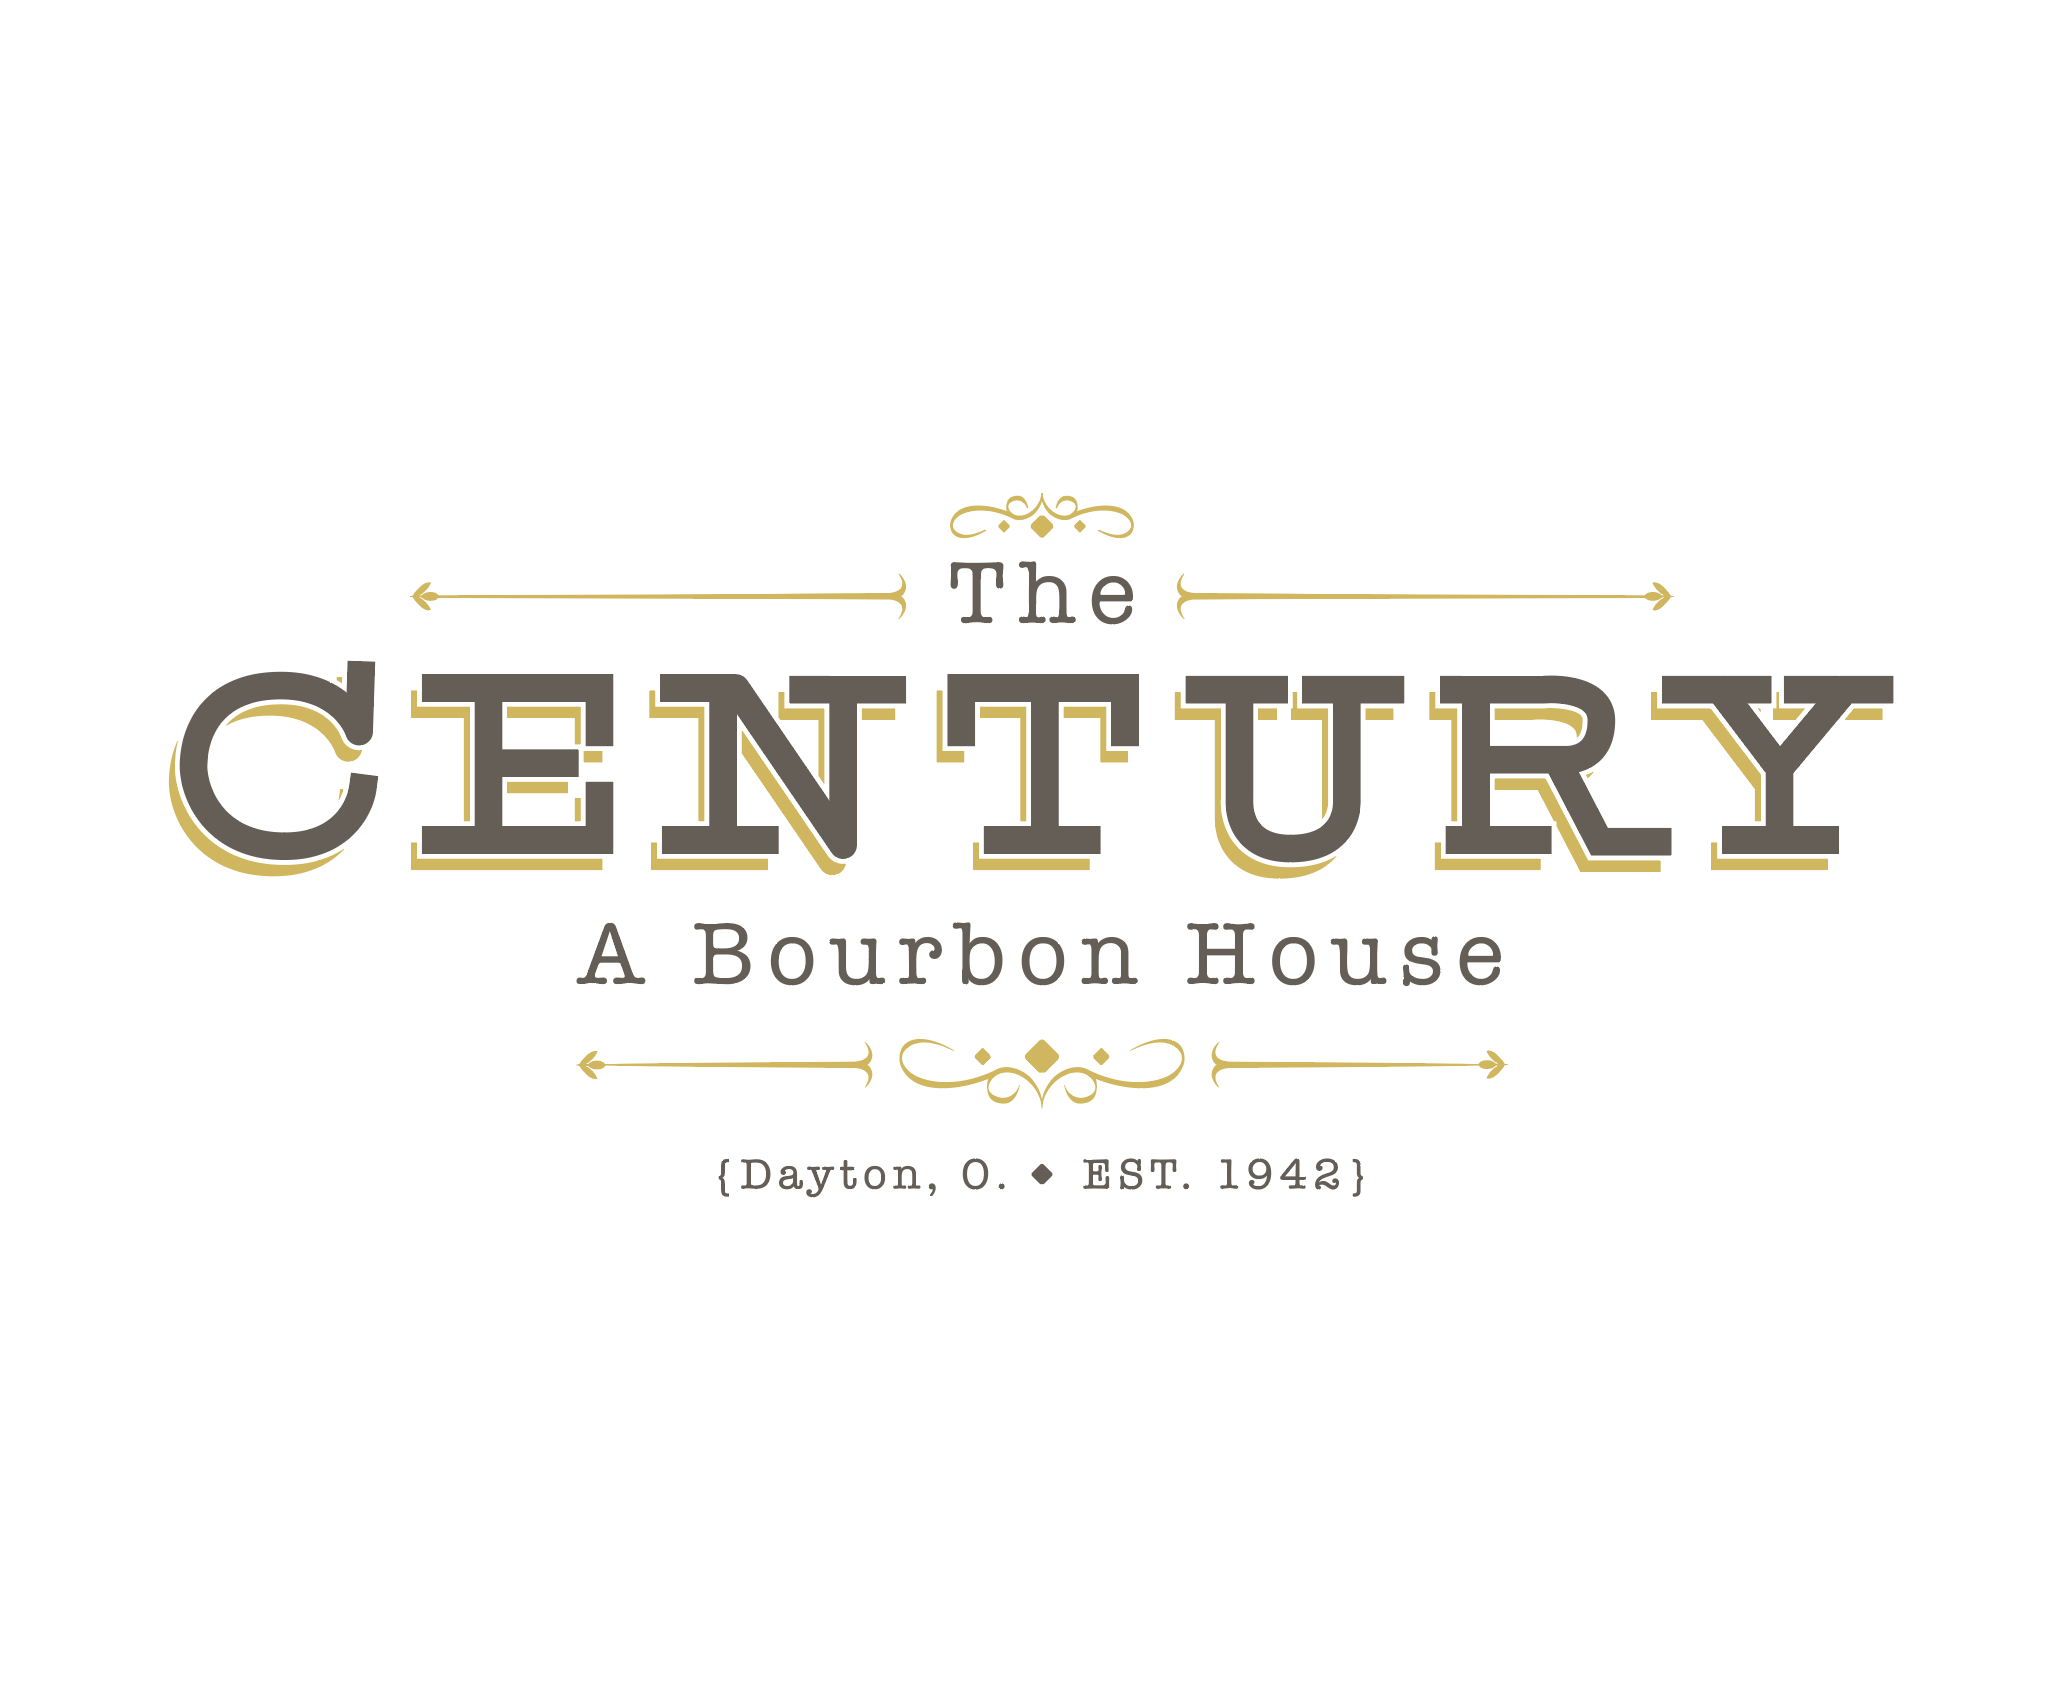 Century Bourbon House branding & blog design